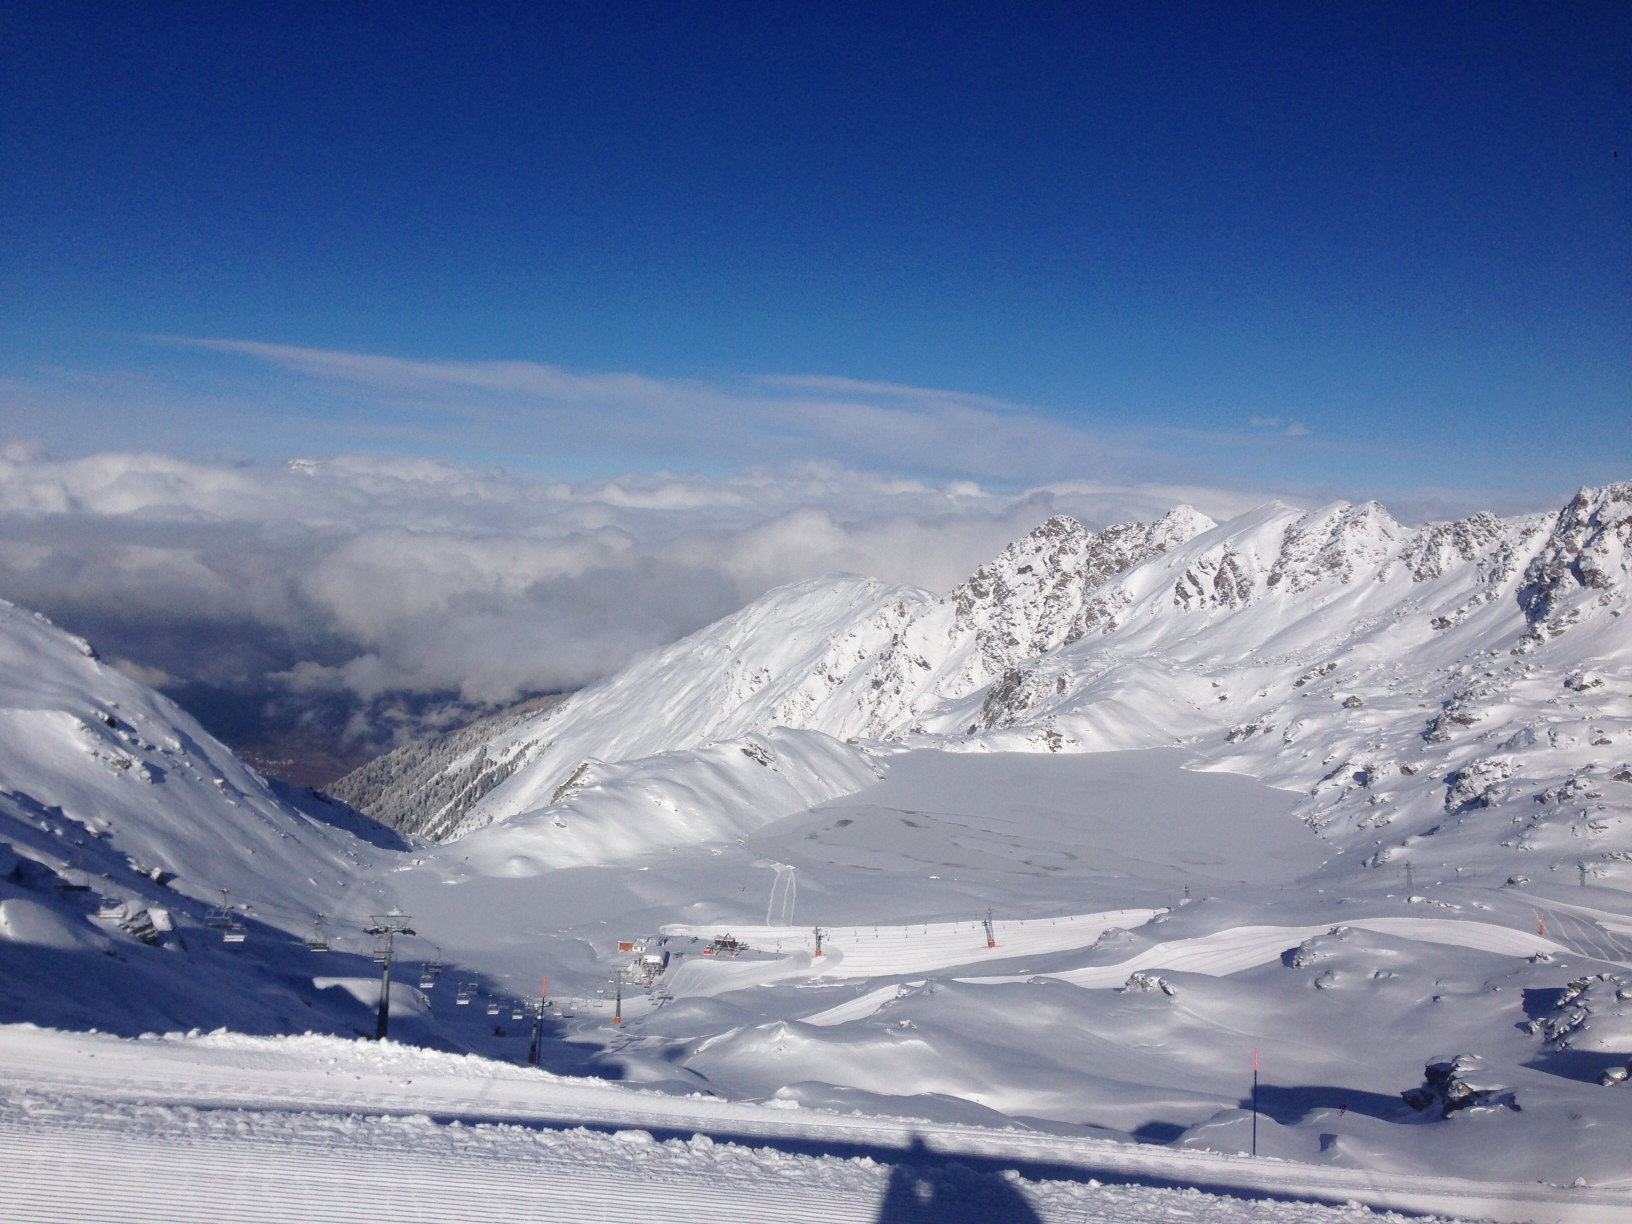 Snow Conditions Excellent Snow Conditions In Verbier!